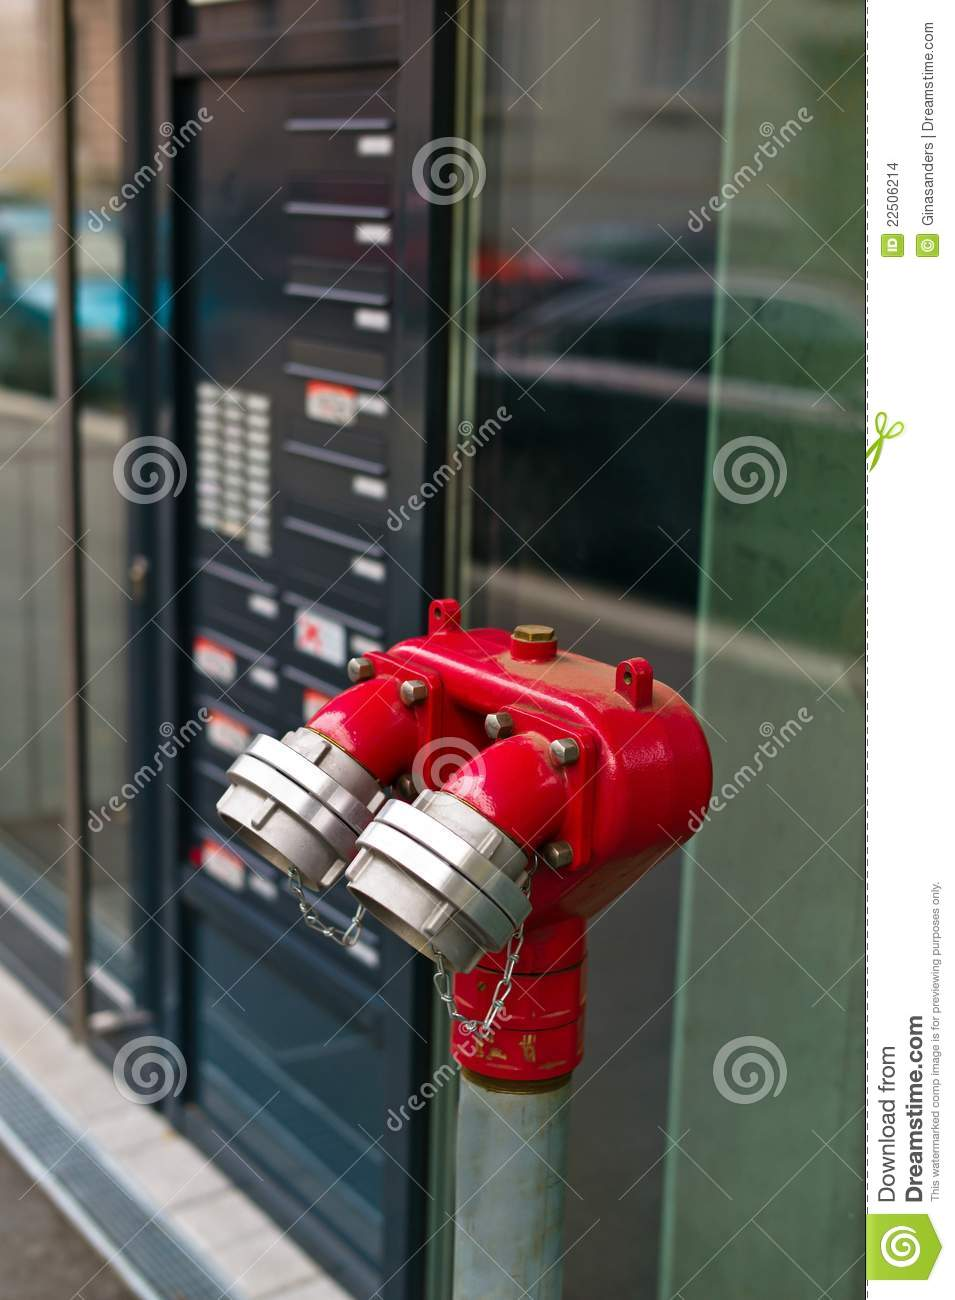 Electrical Wiring Types Of Home furthermore 13a Dp Key Switch Connection Unit Neon Back Box Metalclad Red White Insert further Burglar Alarm Wiring likewise Infinity Control Panel Quick Start Guide furthermore Class A Fire Alarm System. on fire alarm wiring styles